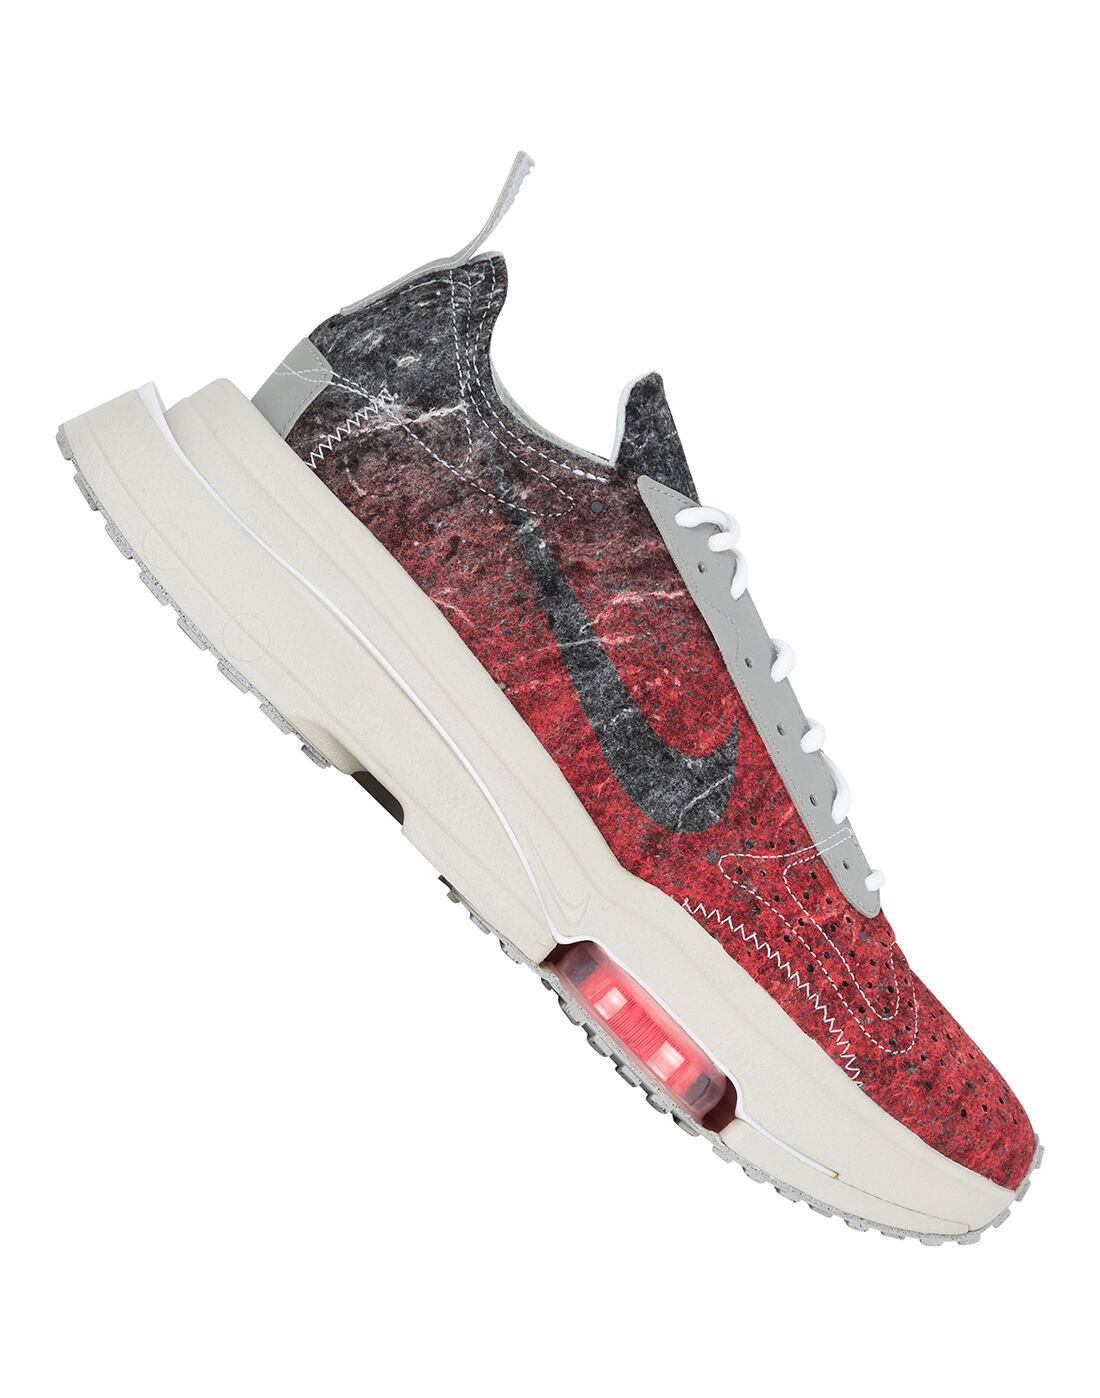 Nike adidas ferrari shoes ftwpc boots sale free trial | Mens Air Zoom Type